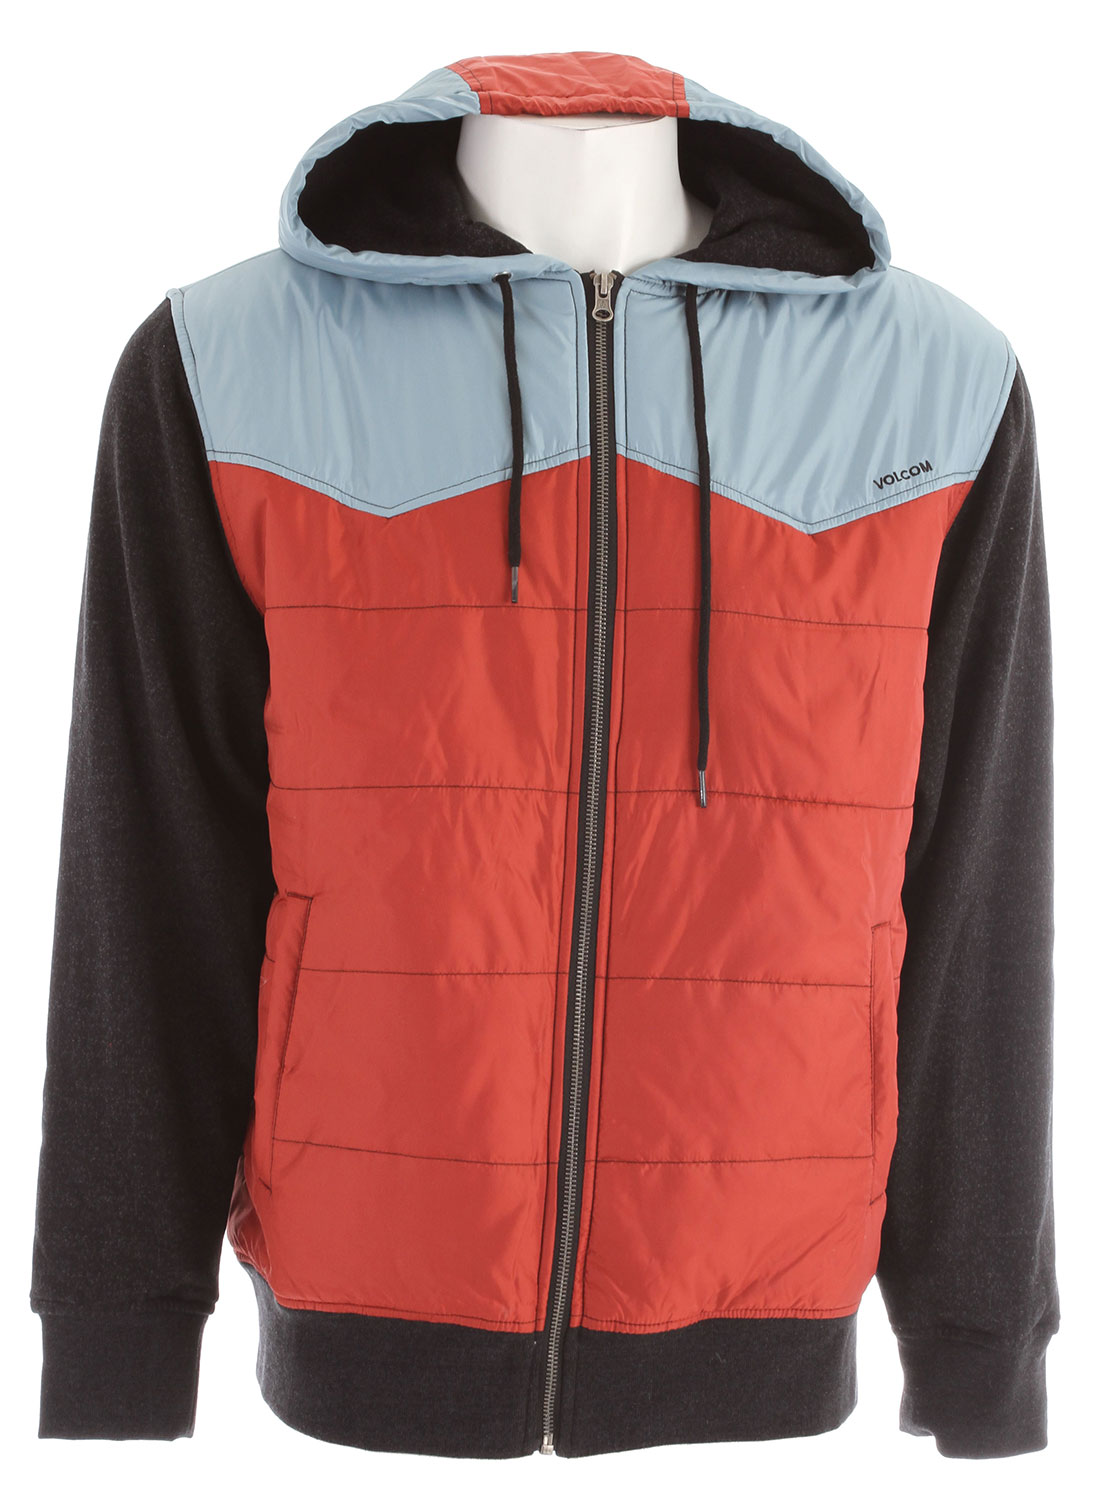 Surf Key Features of the Volcom Cane Hoodie: Quilted poly fill fleece Poly taffeta hood and body Fleece line body and fleece sleeves Outdoor trim package Chest embroidery Pre shrunk, basic fit 600mm DWR poly taffeta/60% cotton/40% polyester fleece, 260gm - $43.95